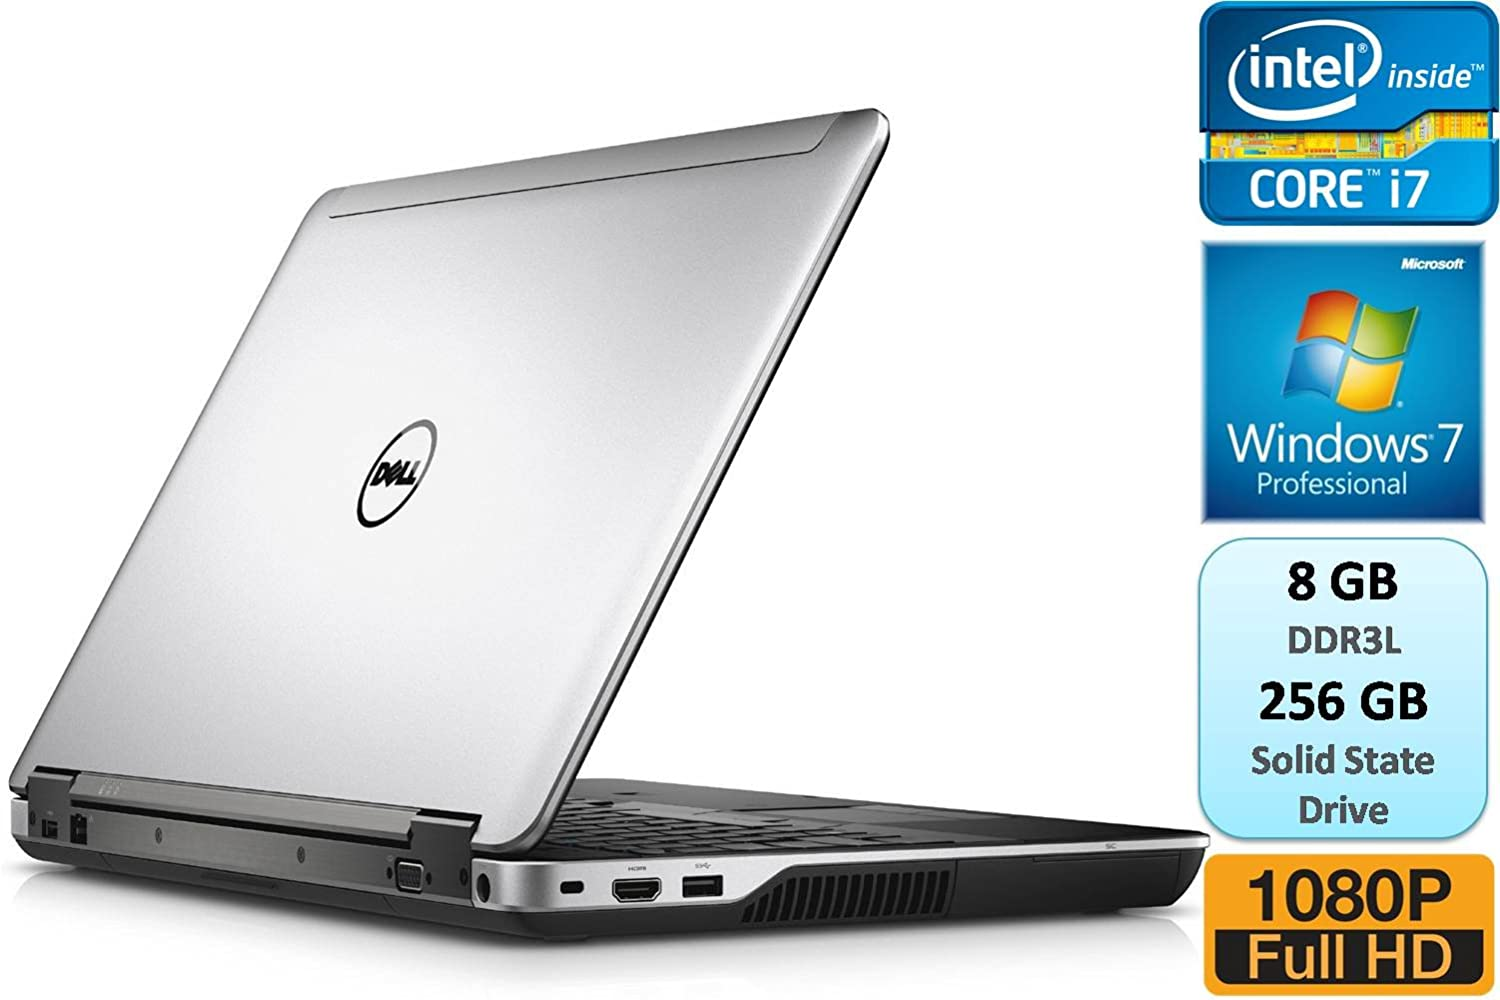 Dell Latitude E6440 Business Laptop Full HD 1920x1080 Intel Core i7 i7-4610M 3.0GHz 8GB DDR3L 256GB SSD Windows 7 Professional Webcam DVDRW